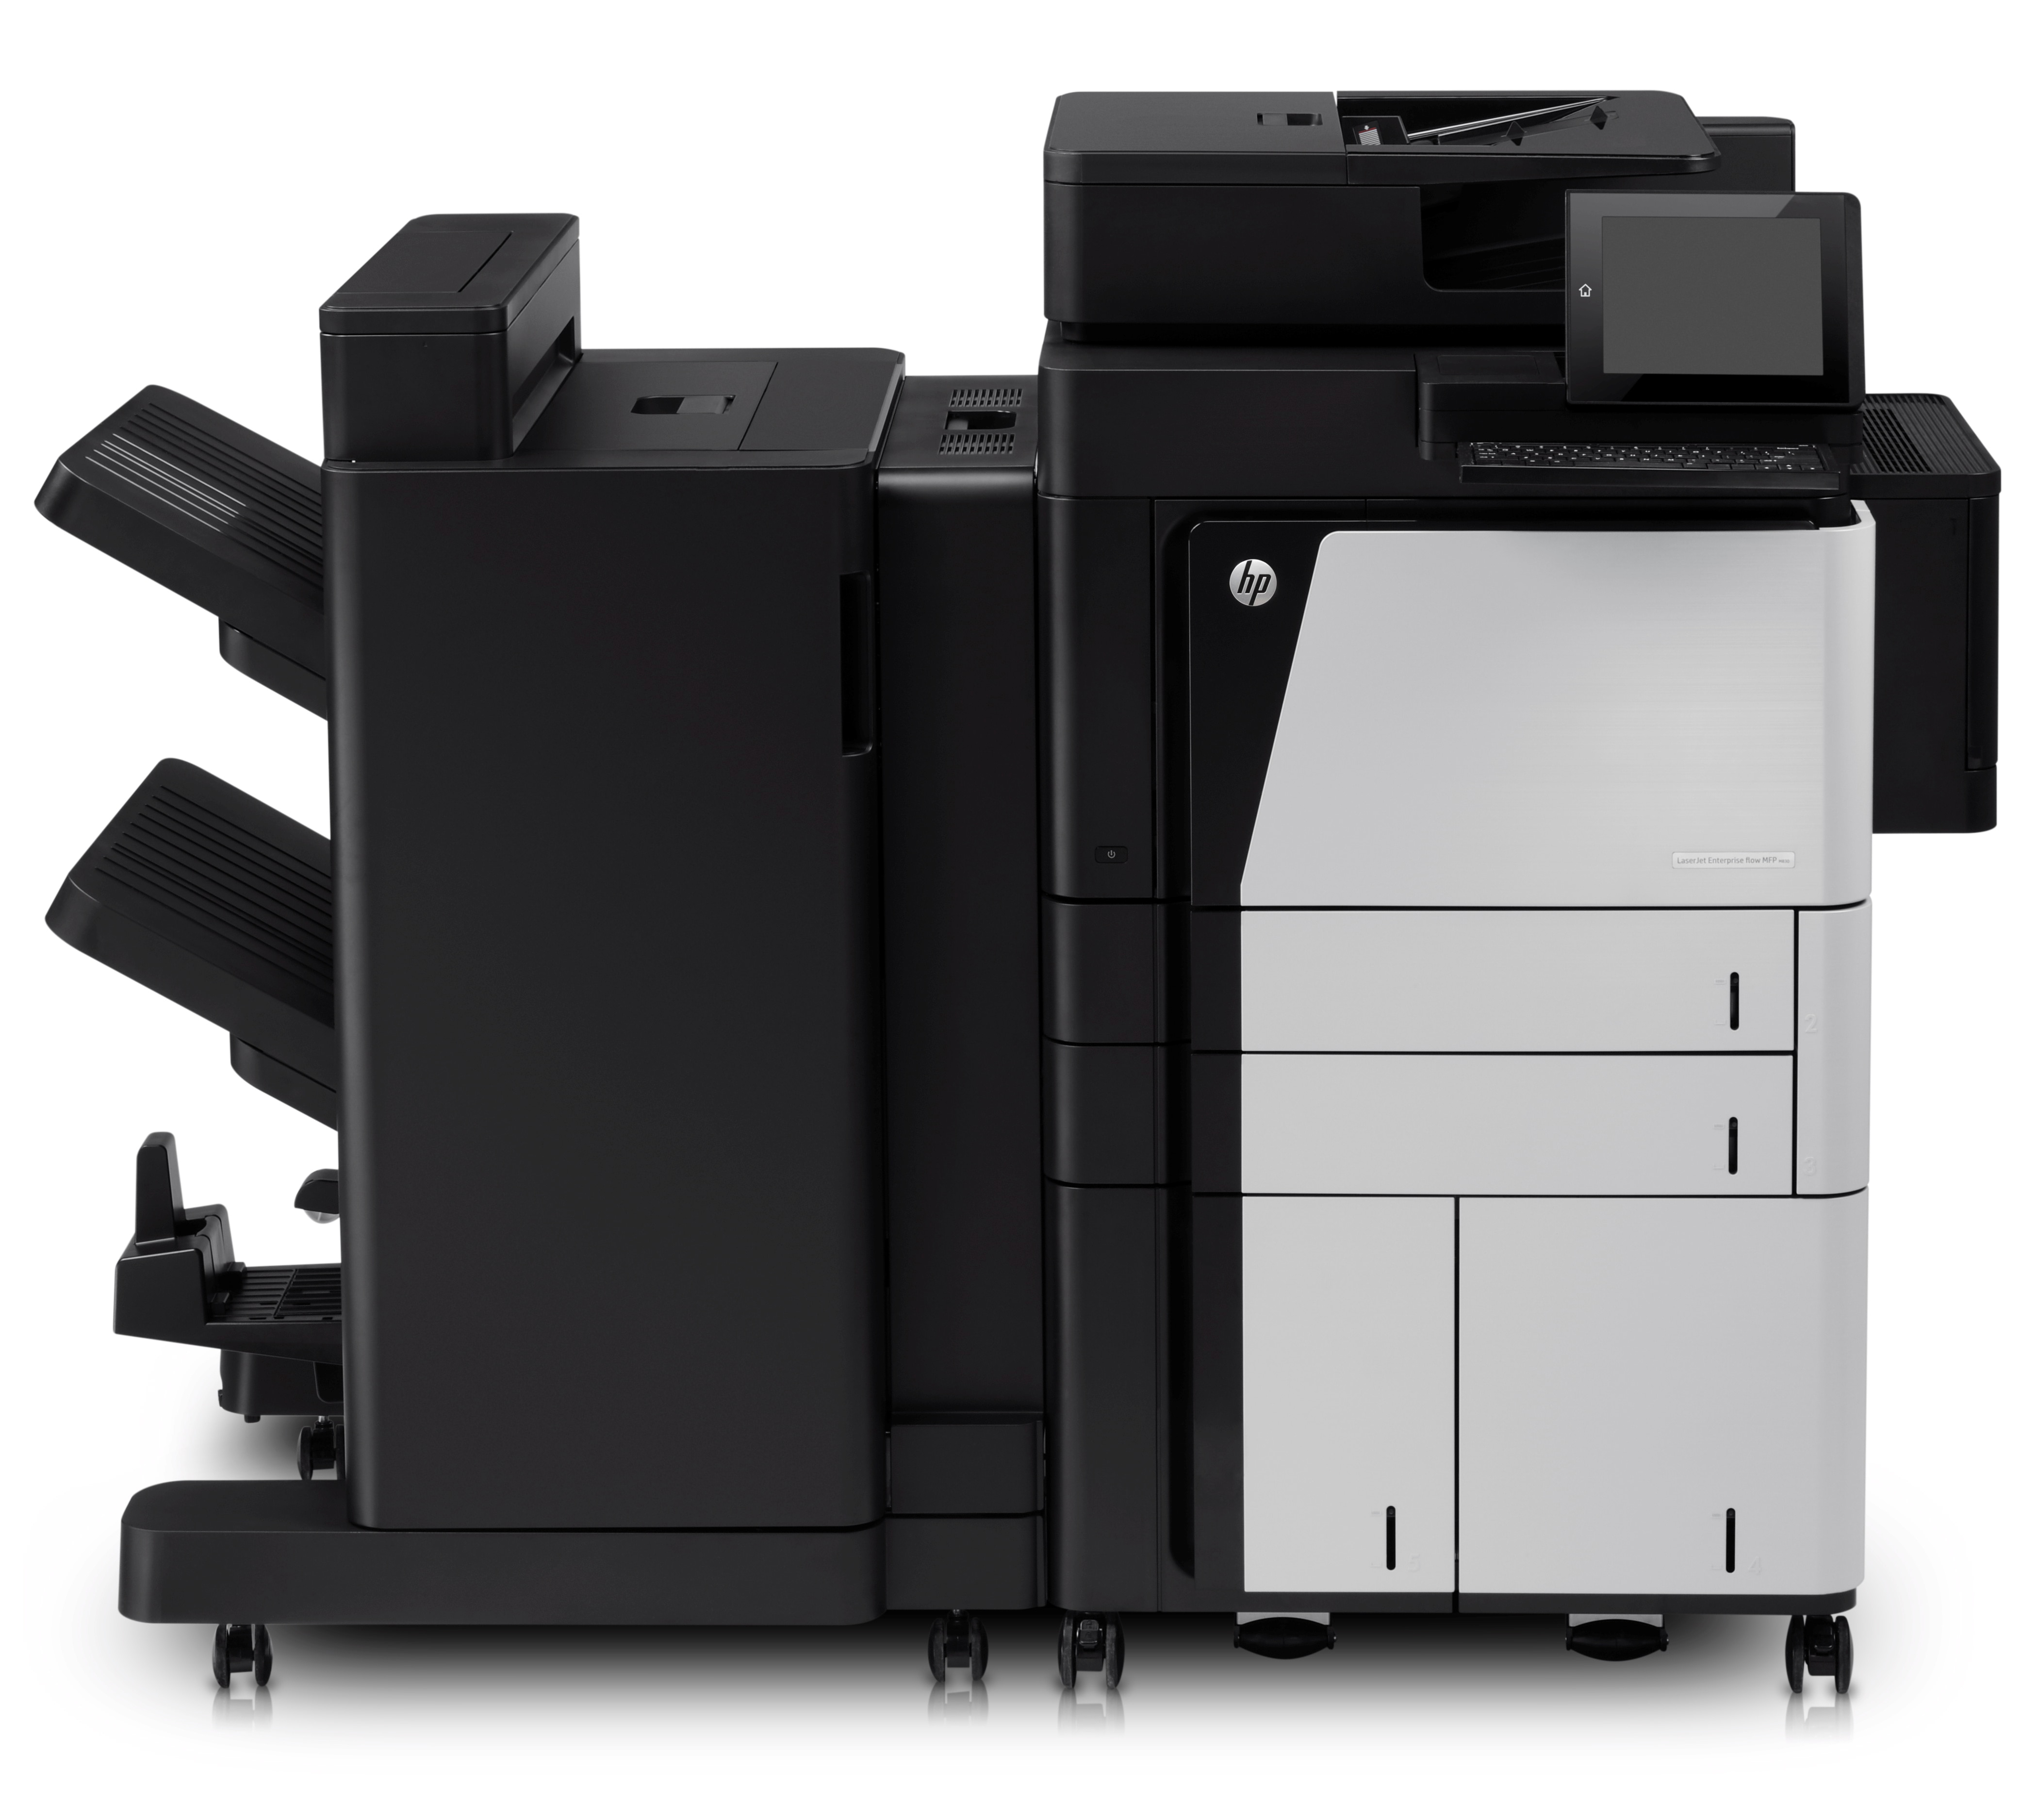 HP/ Laserjet Enterprise M830z MFP/ Mono/ A3/ 50ppm/ Network/ Duplex/ Fax/ 120GB HDD CF367A Exdemo (A1 Condition) - Graded